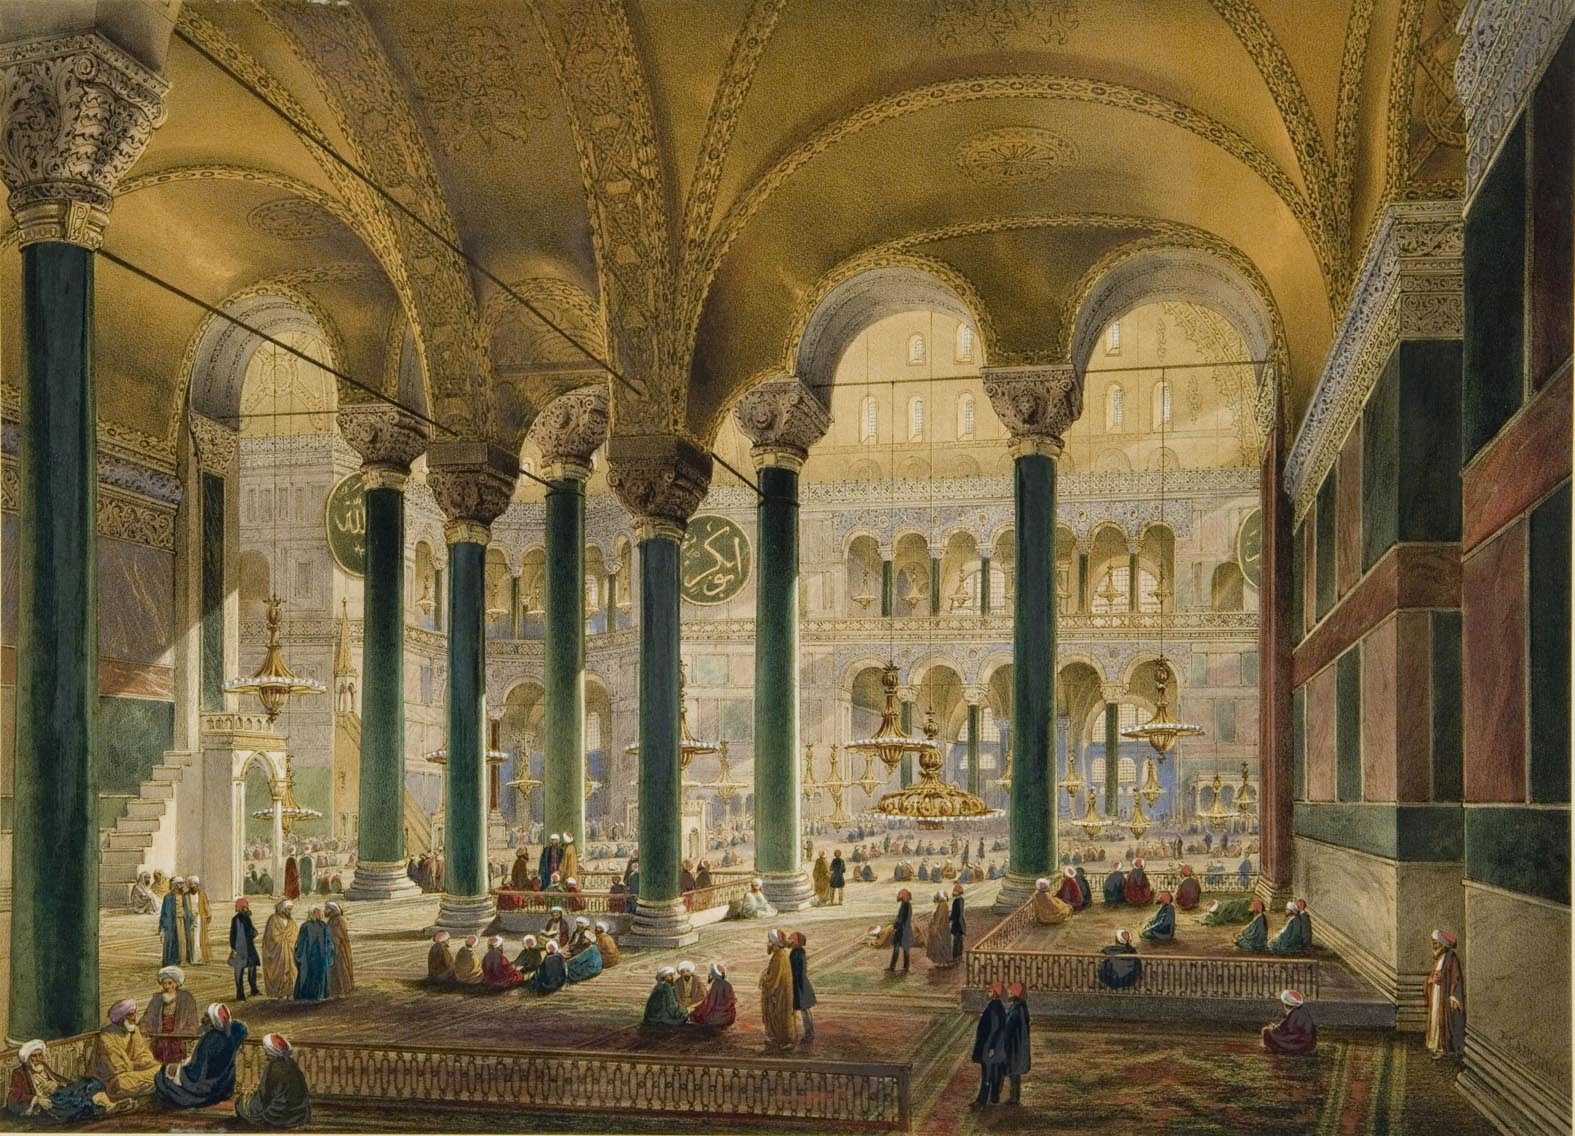 A painting shows the 19th century Hagia  Sofia which was used as a mosque at the time.